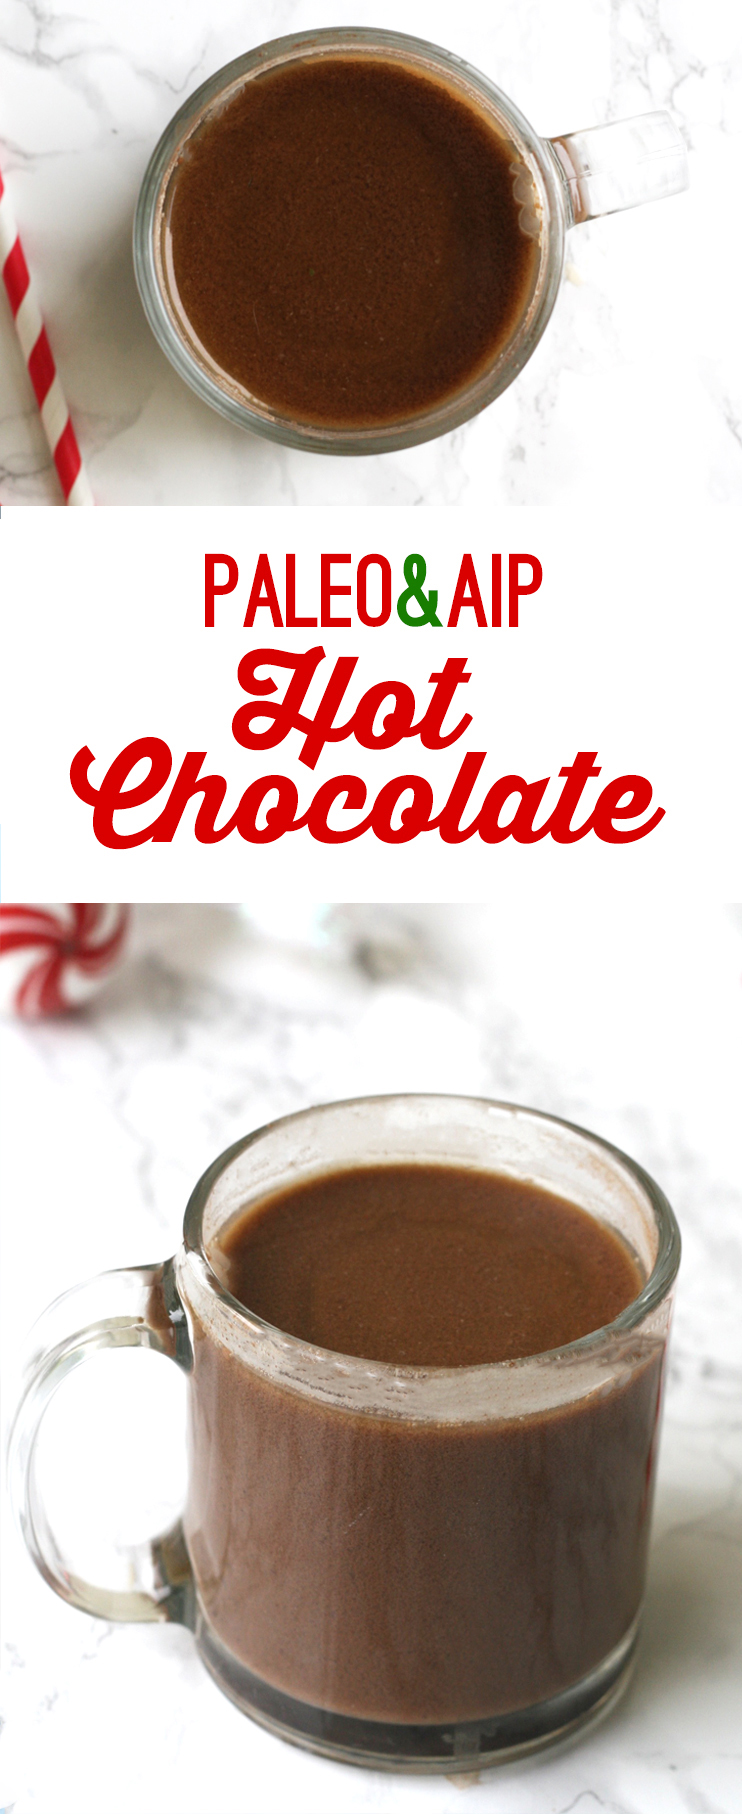 "AIP Paleo Hot ""Chocolate"""